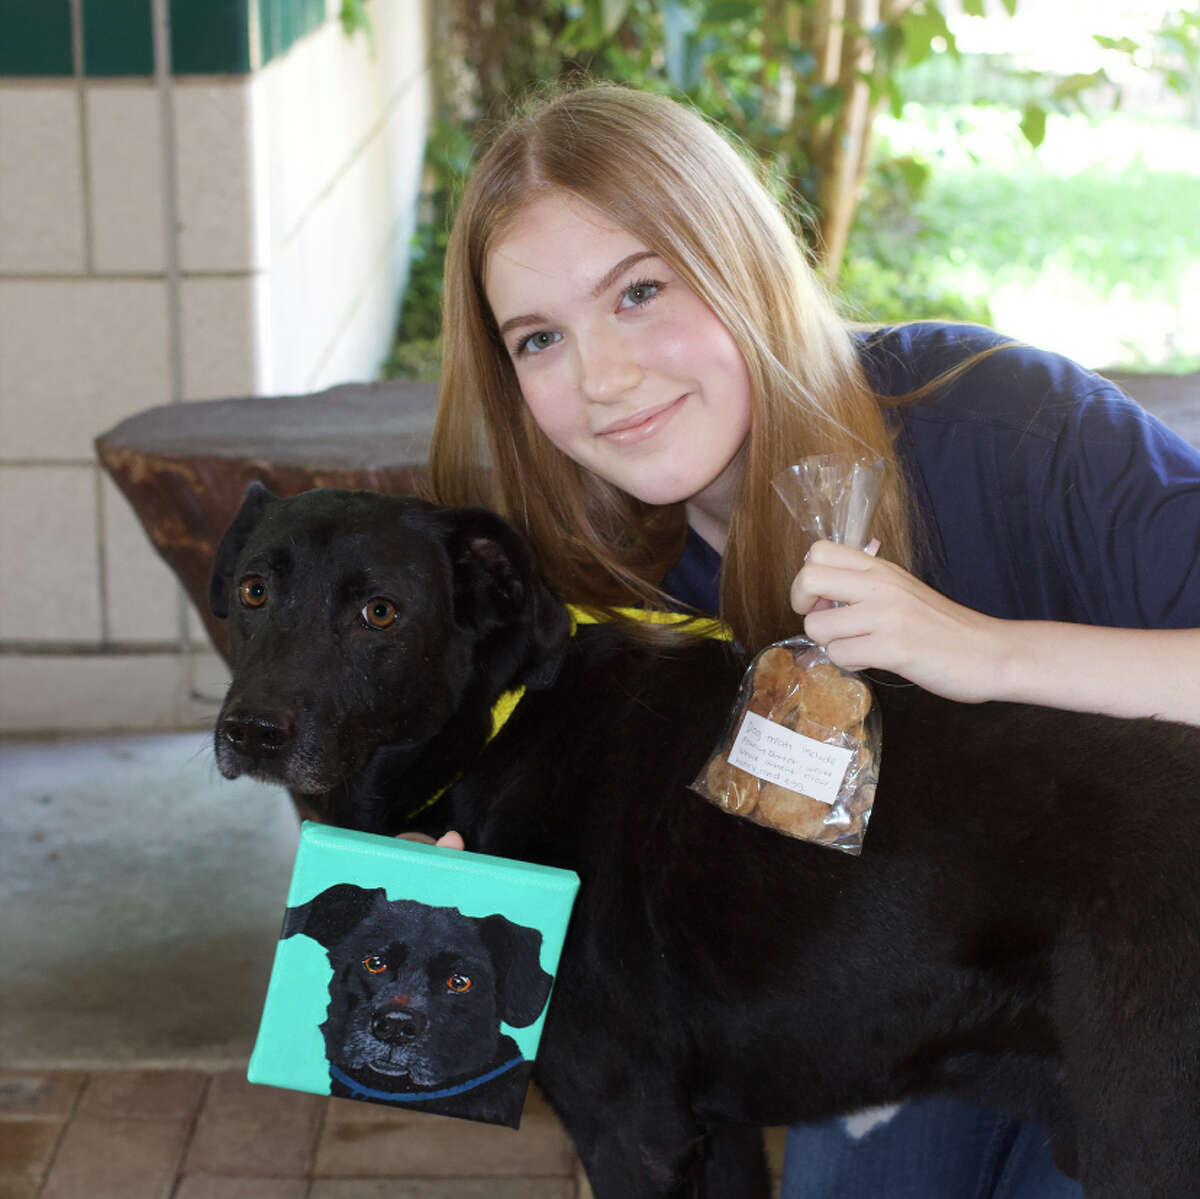 Riley Burwell, a junior counselor at Houston Humane Society's Camp Pawsome, has raised more than $500 to support heartworm-positive pets through sales of her paintings and homemade dog treats.